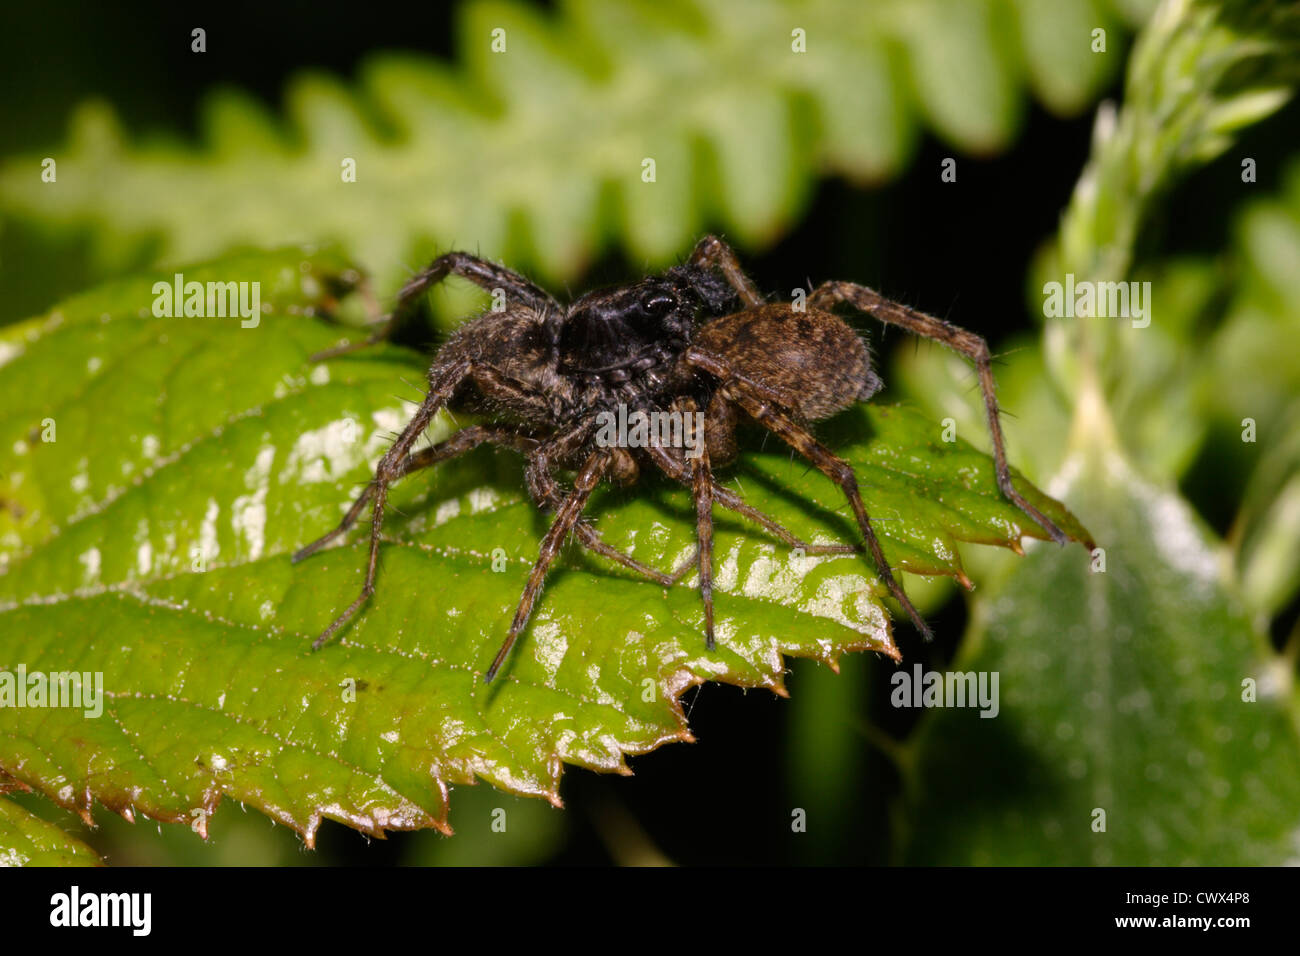 Spotted wolf spider (Pardosa amentata : Lycosidae), mating pair, UK - Stock Image